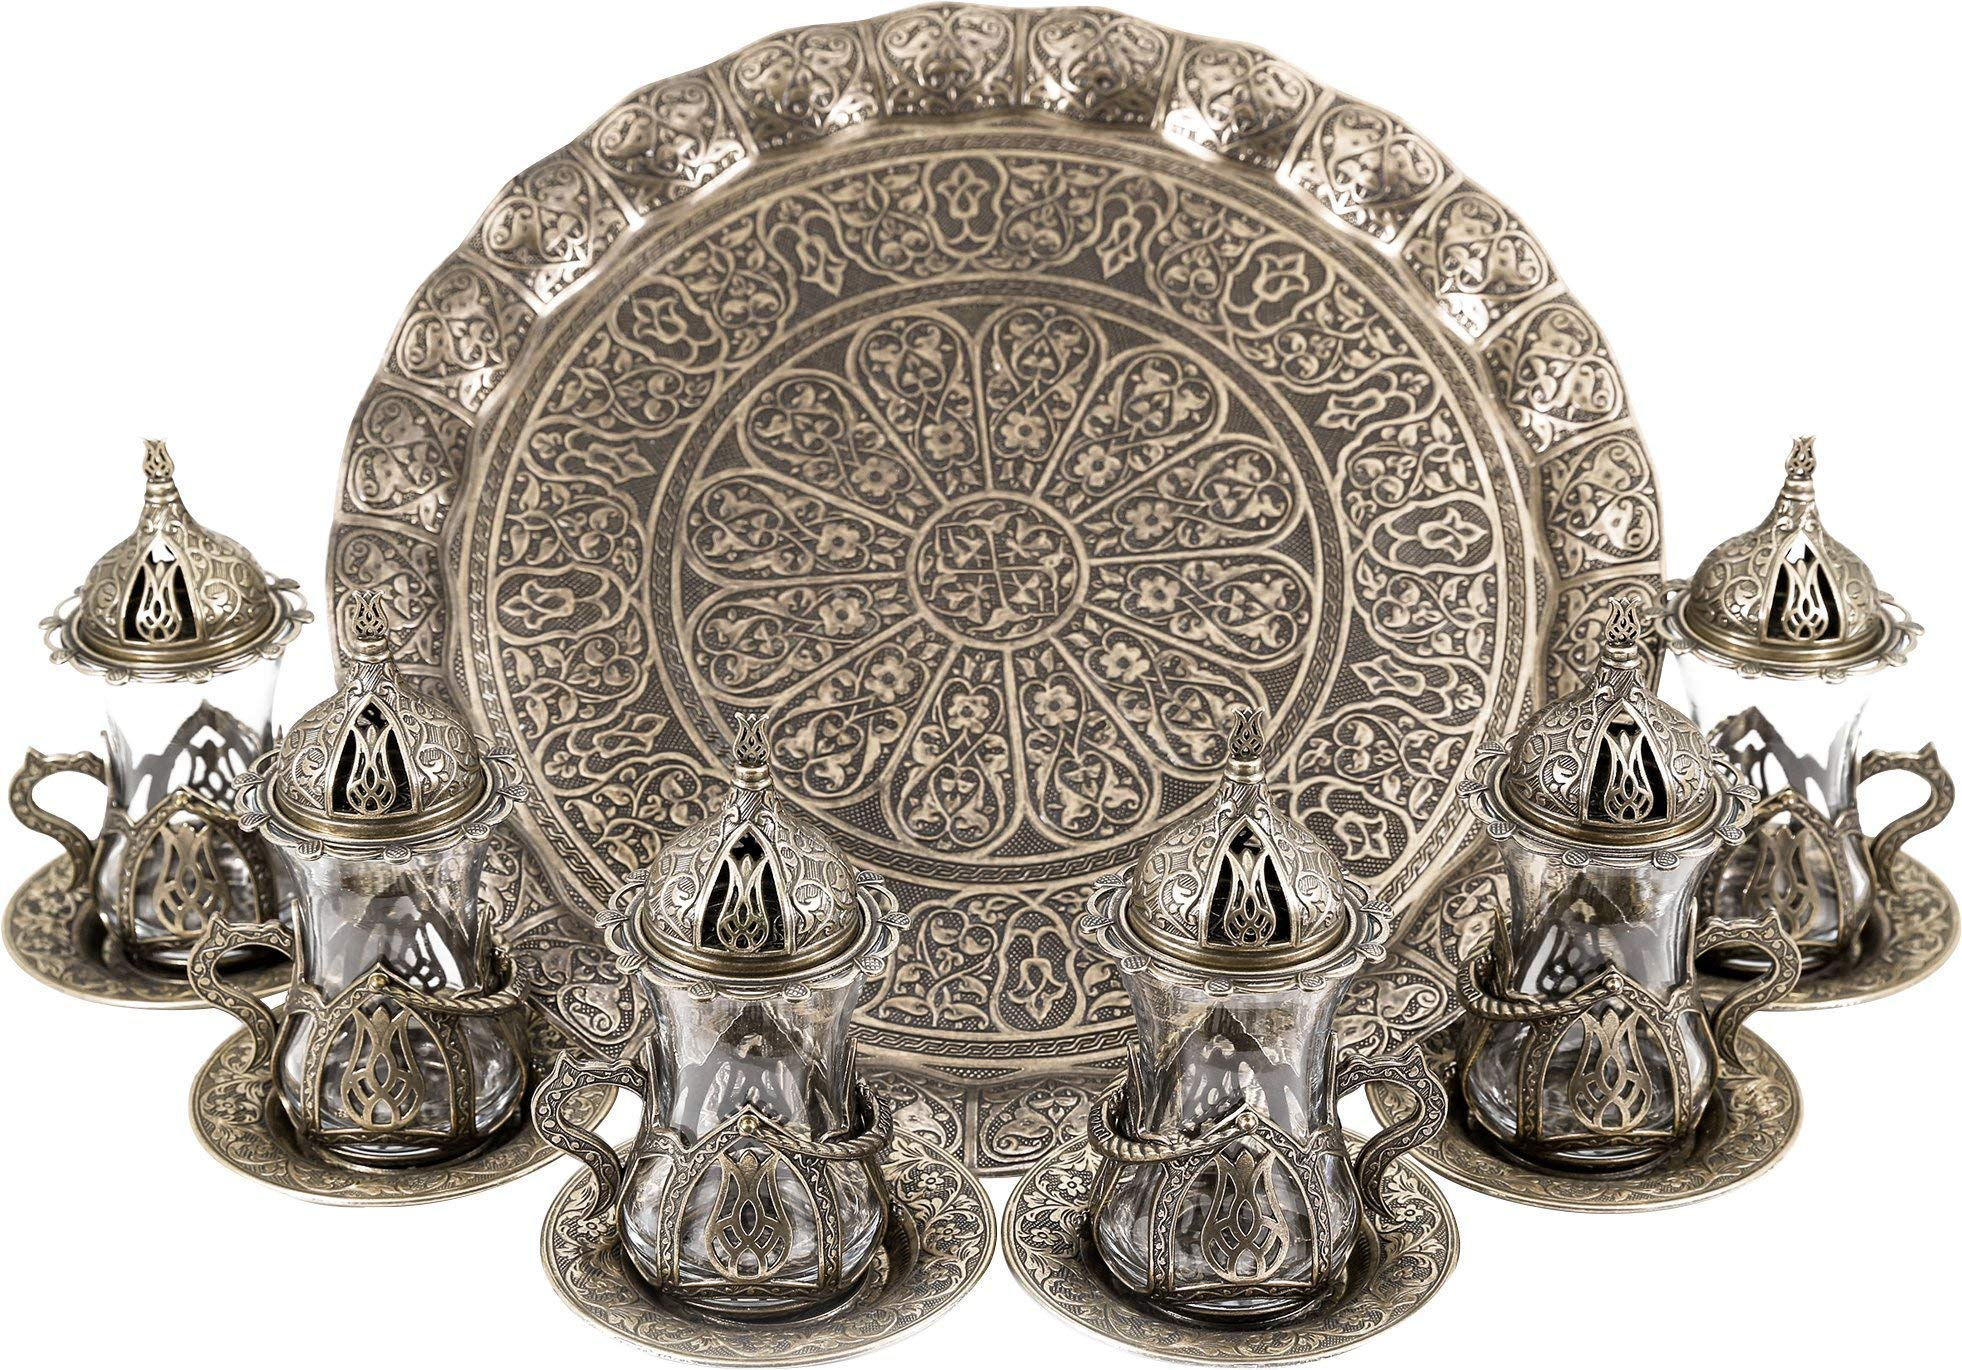 Turkish Moroccan Indian Tea Set for Six - Glasses with Brass Holders Lids Saucers Tray, Tea Cups, Tea Servers- Antique Gold- (TS-203)